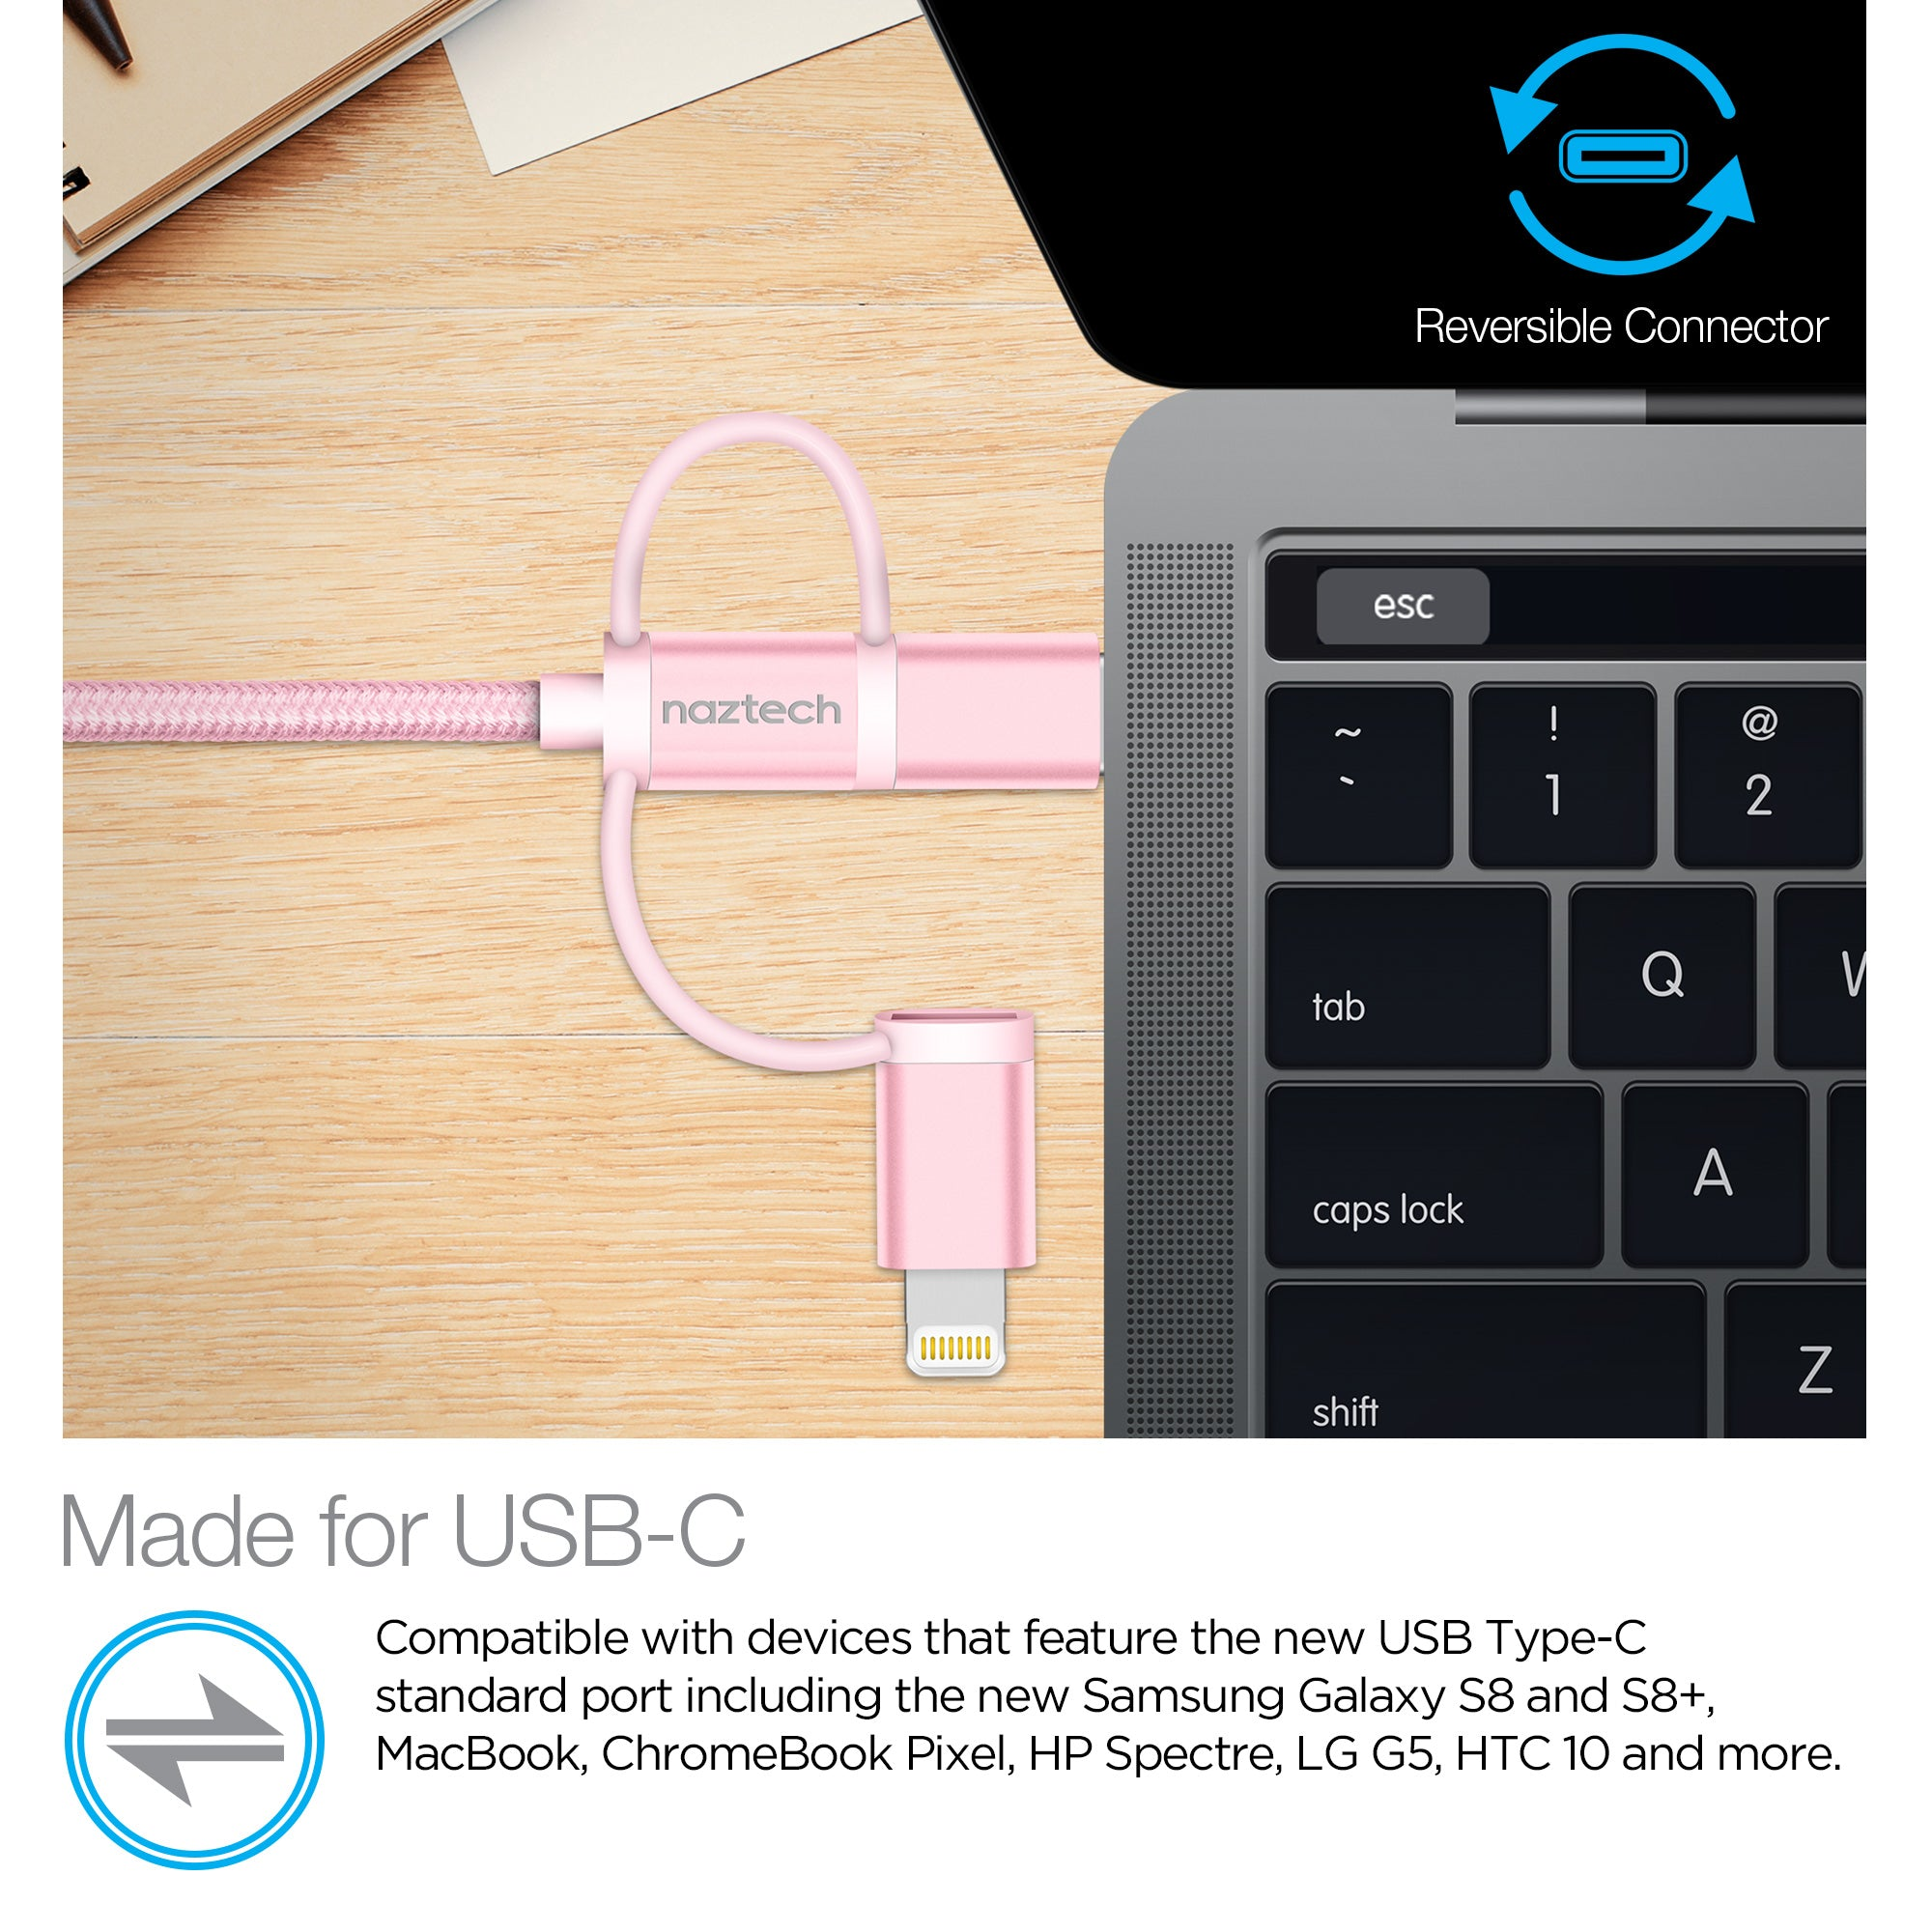 Braided 3-in-1 Hybrid USB Cable